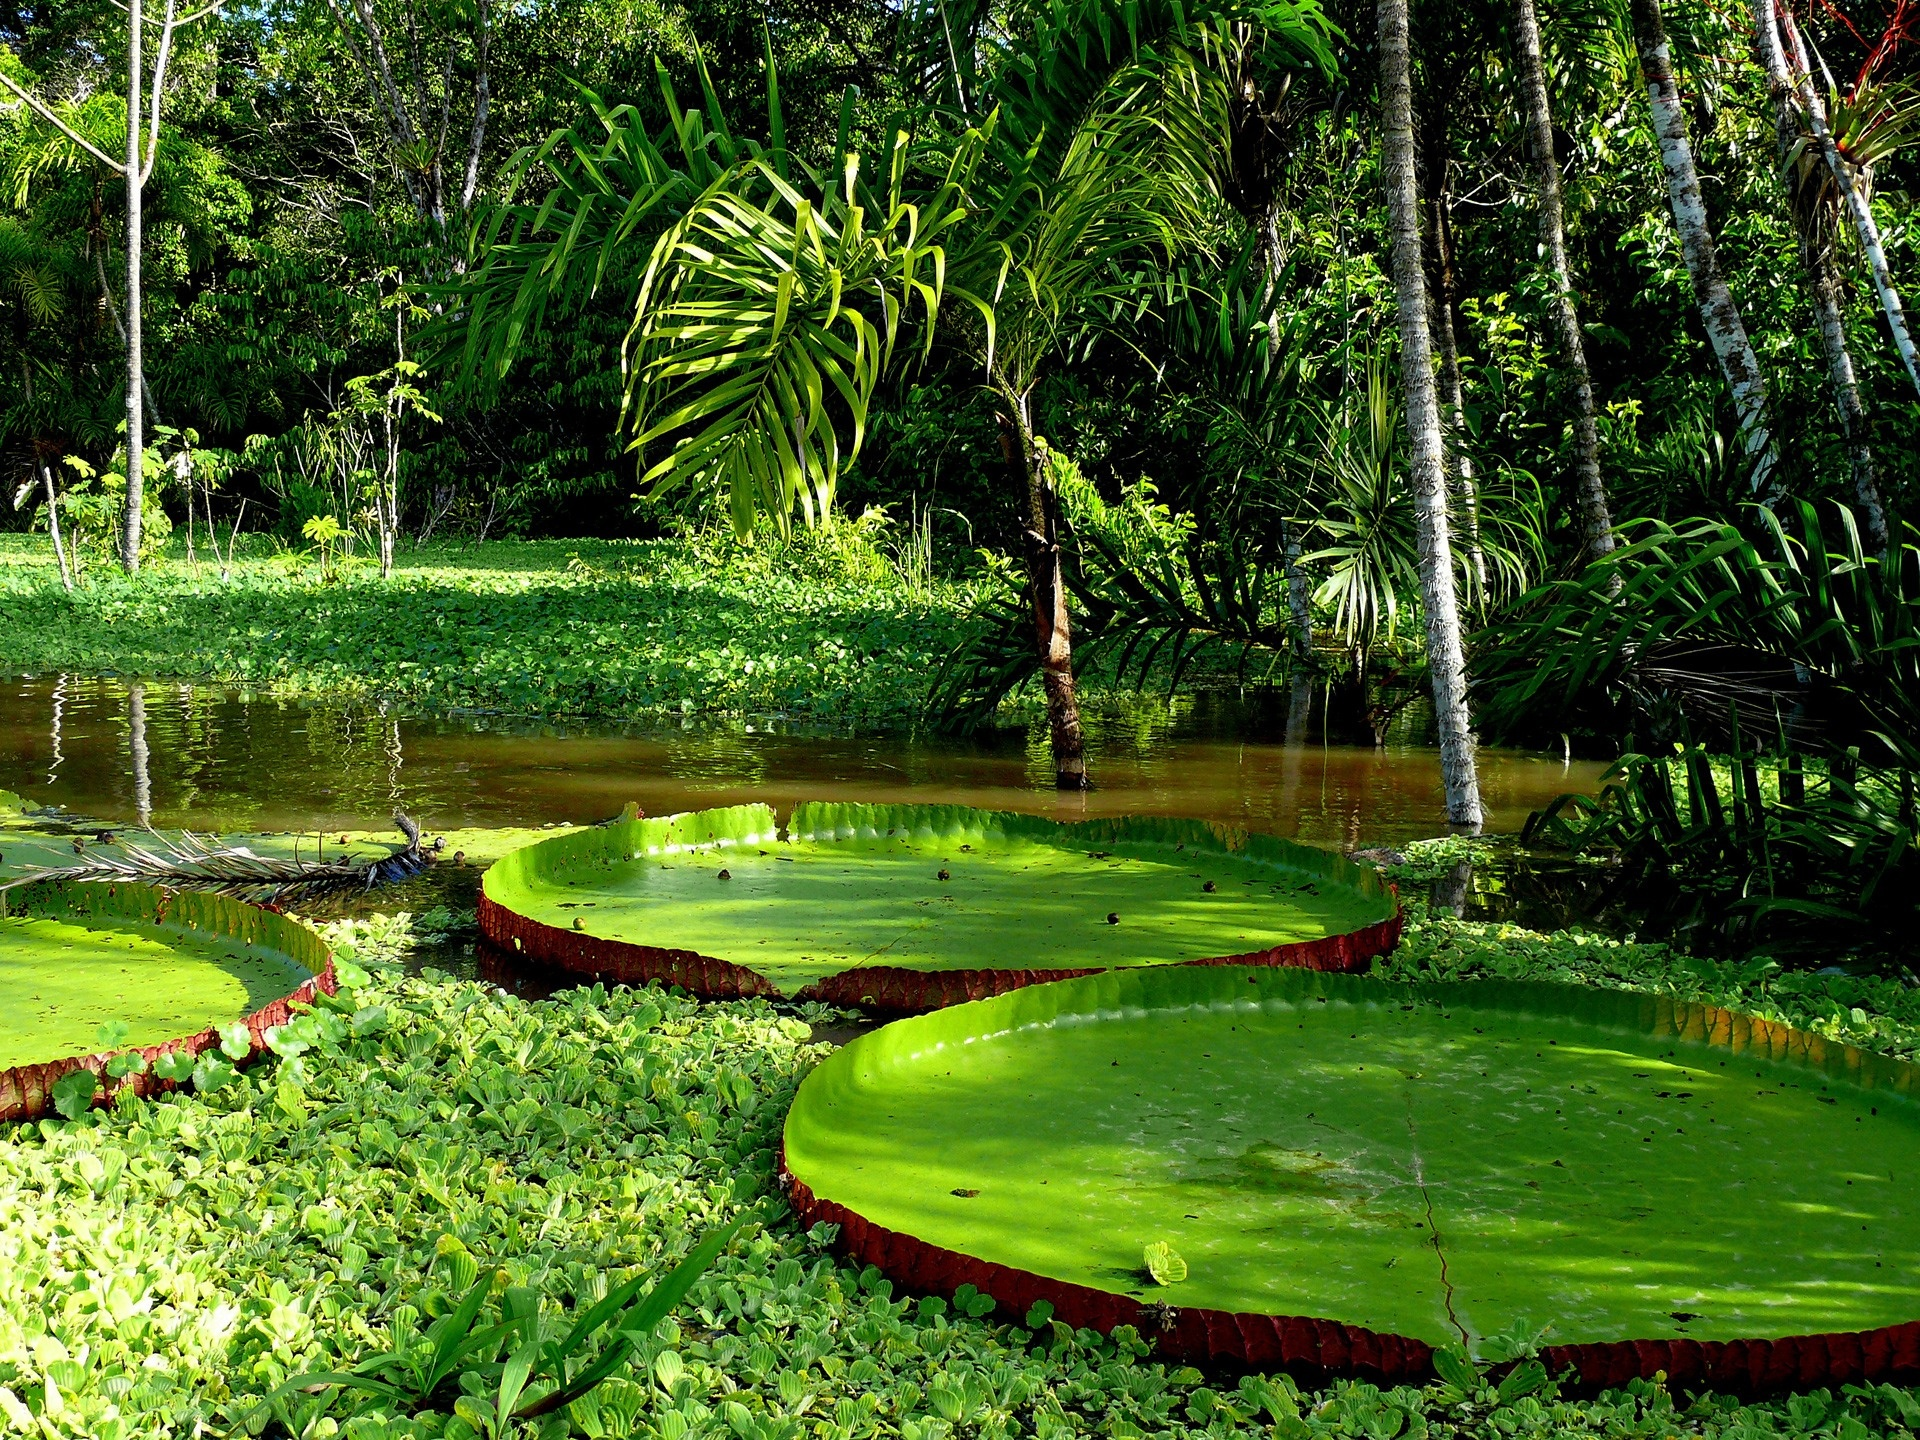 Giant-Amazon-Water-Lily-Pad-wallpaper-wp5405264